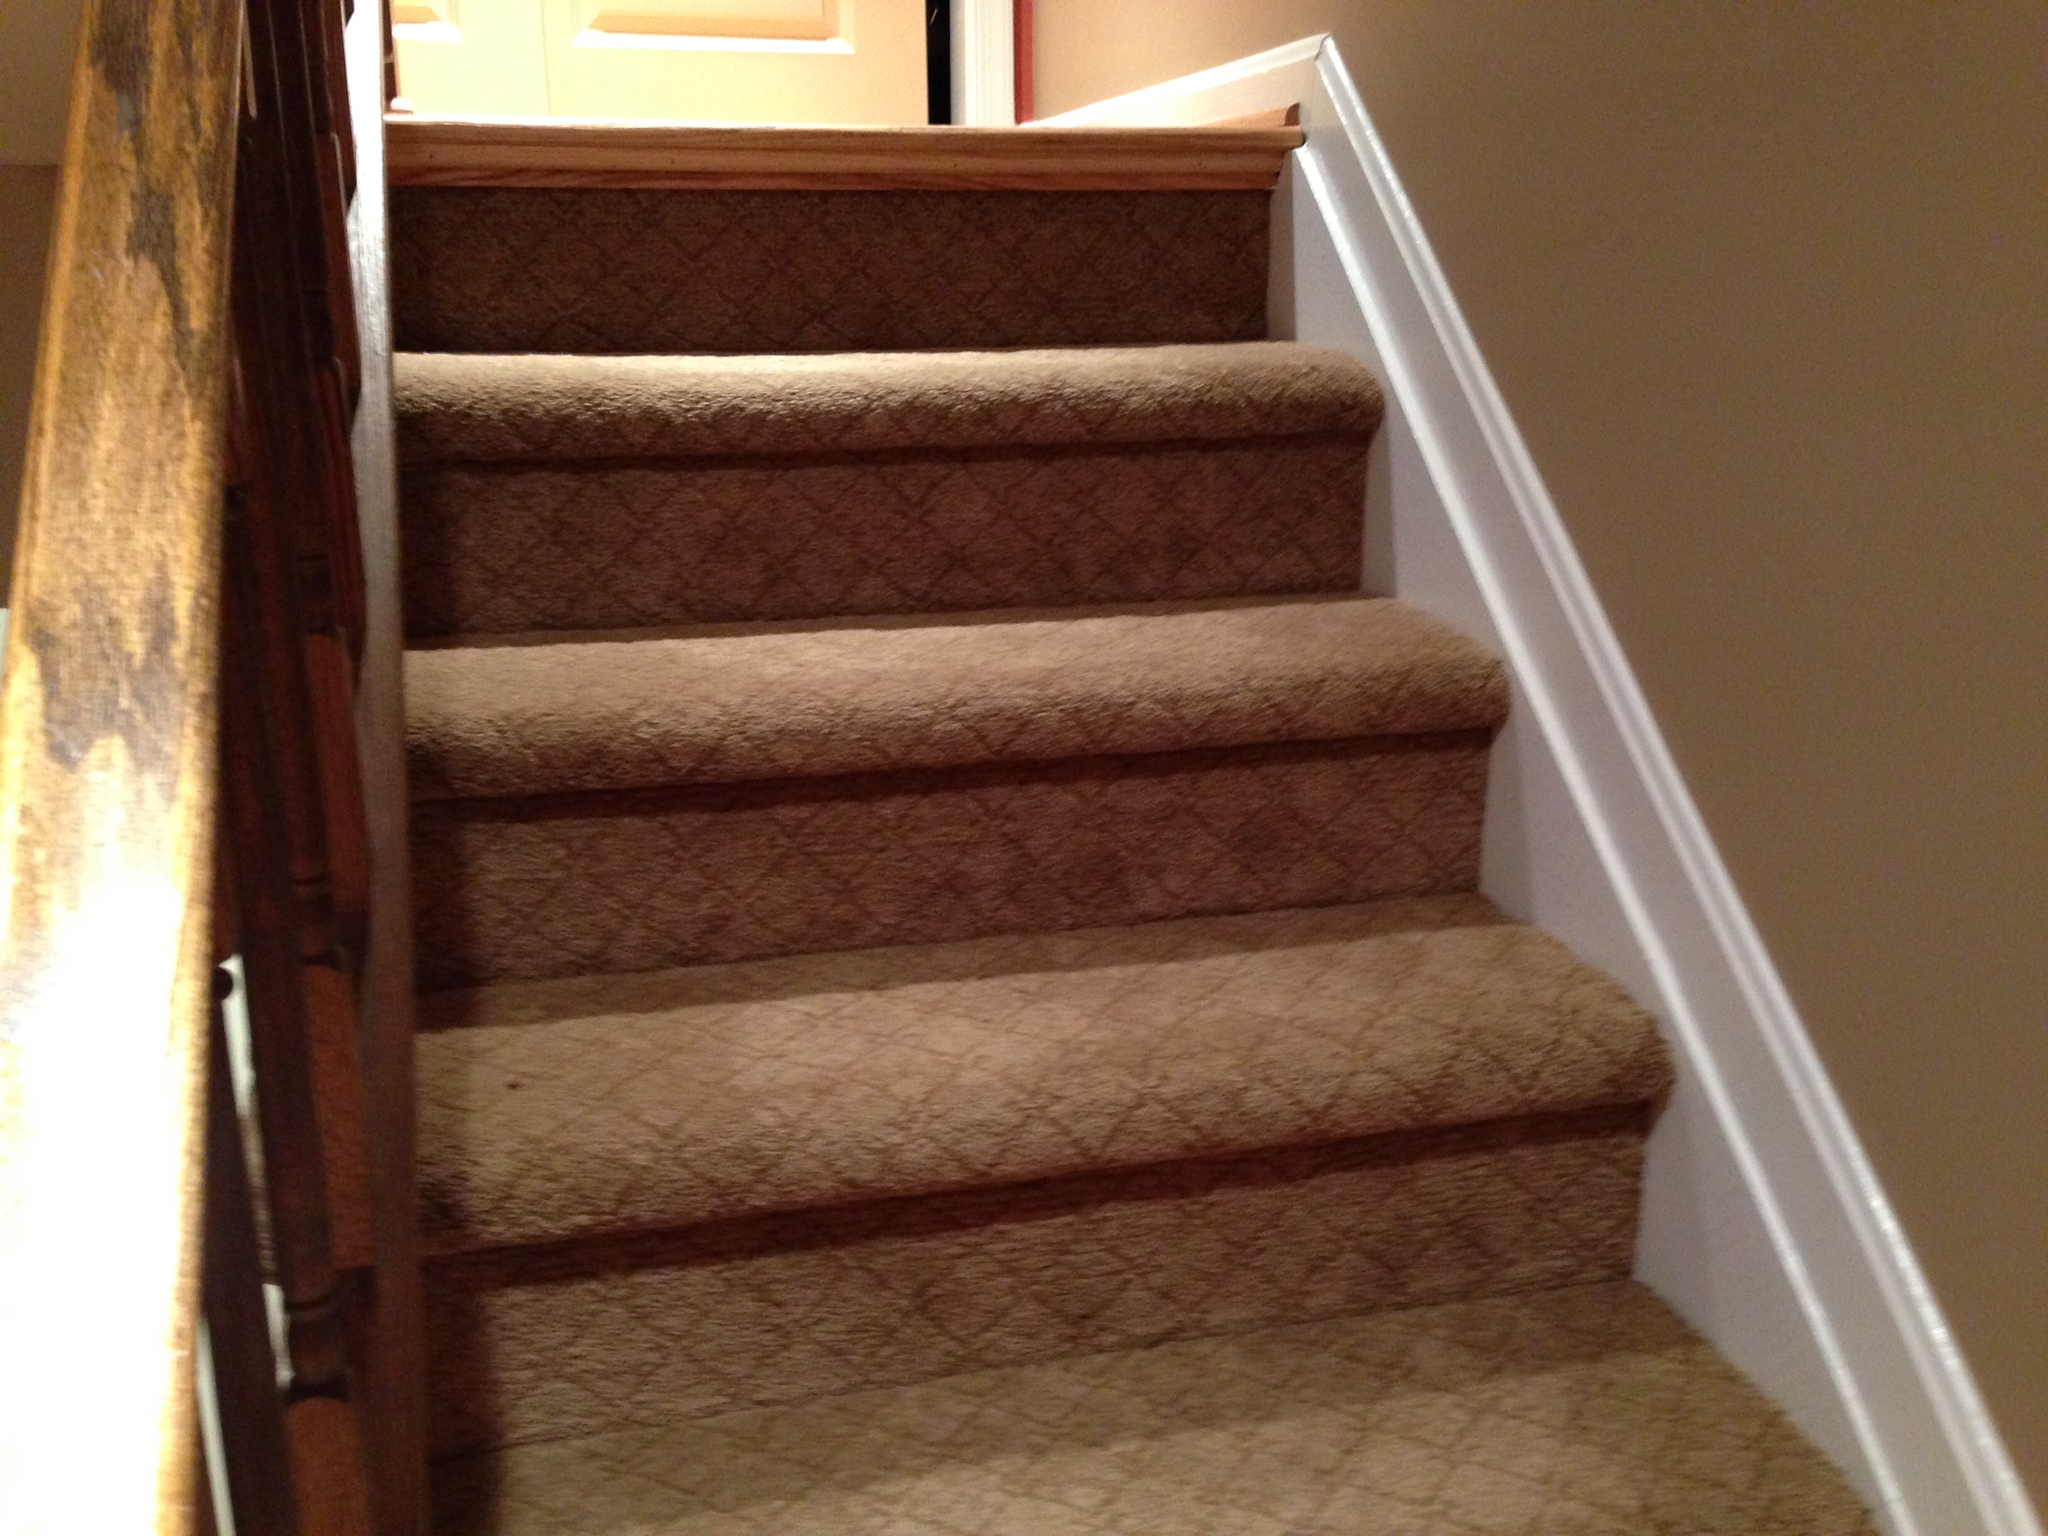 Carpet stairs carpeted stairs SADFXPO